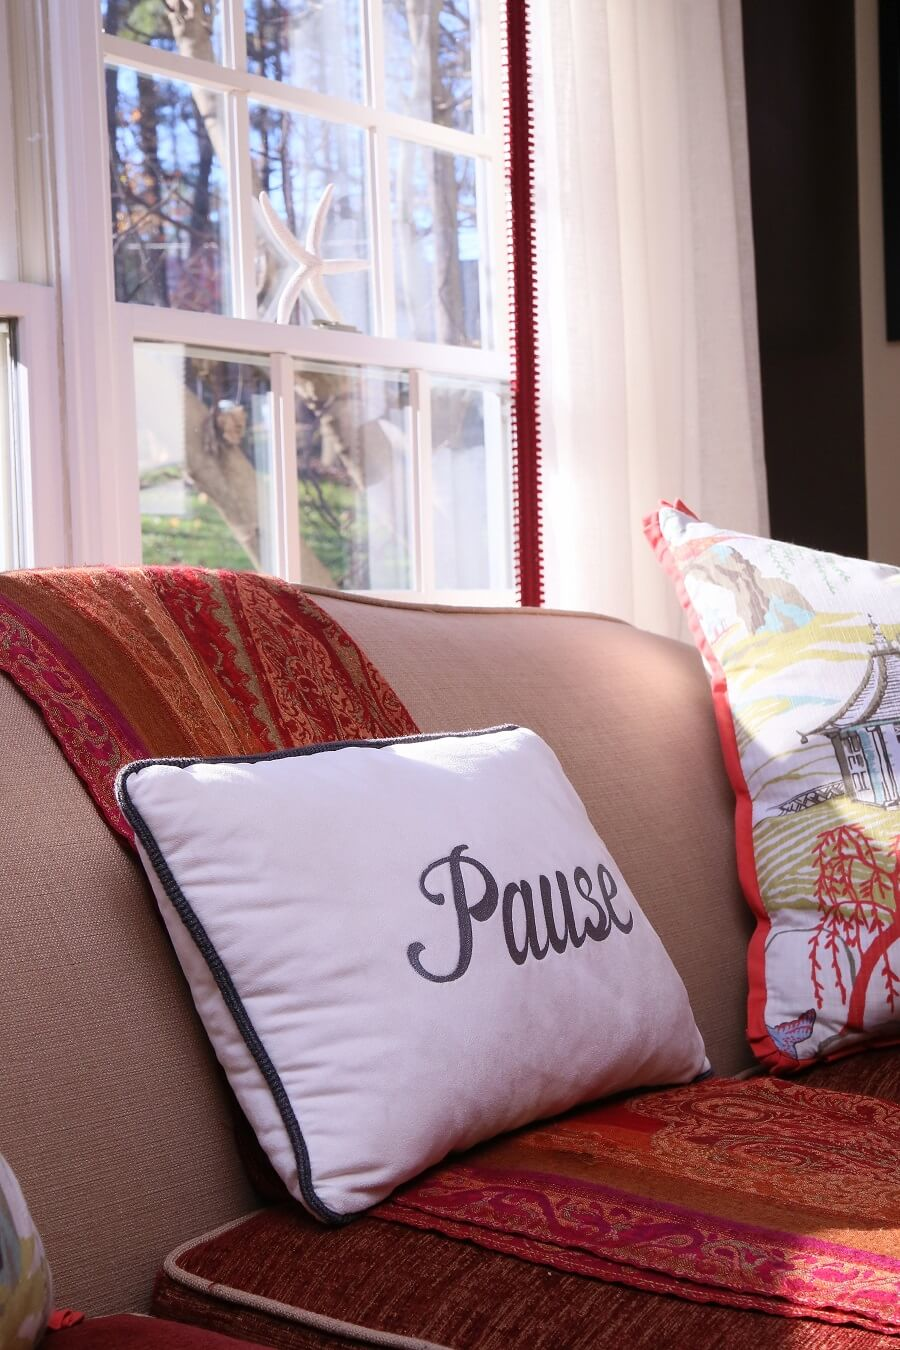 The right word on an accent pillow can remind you about the purpose of a comfortable sofa.